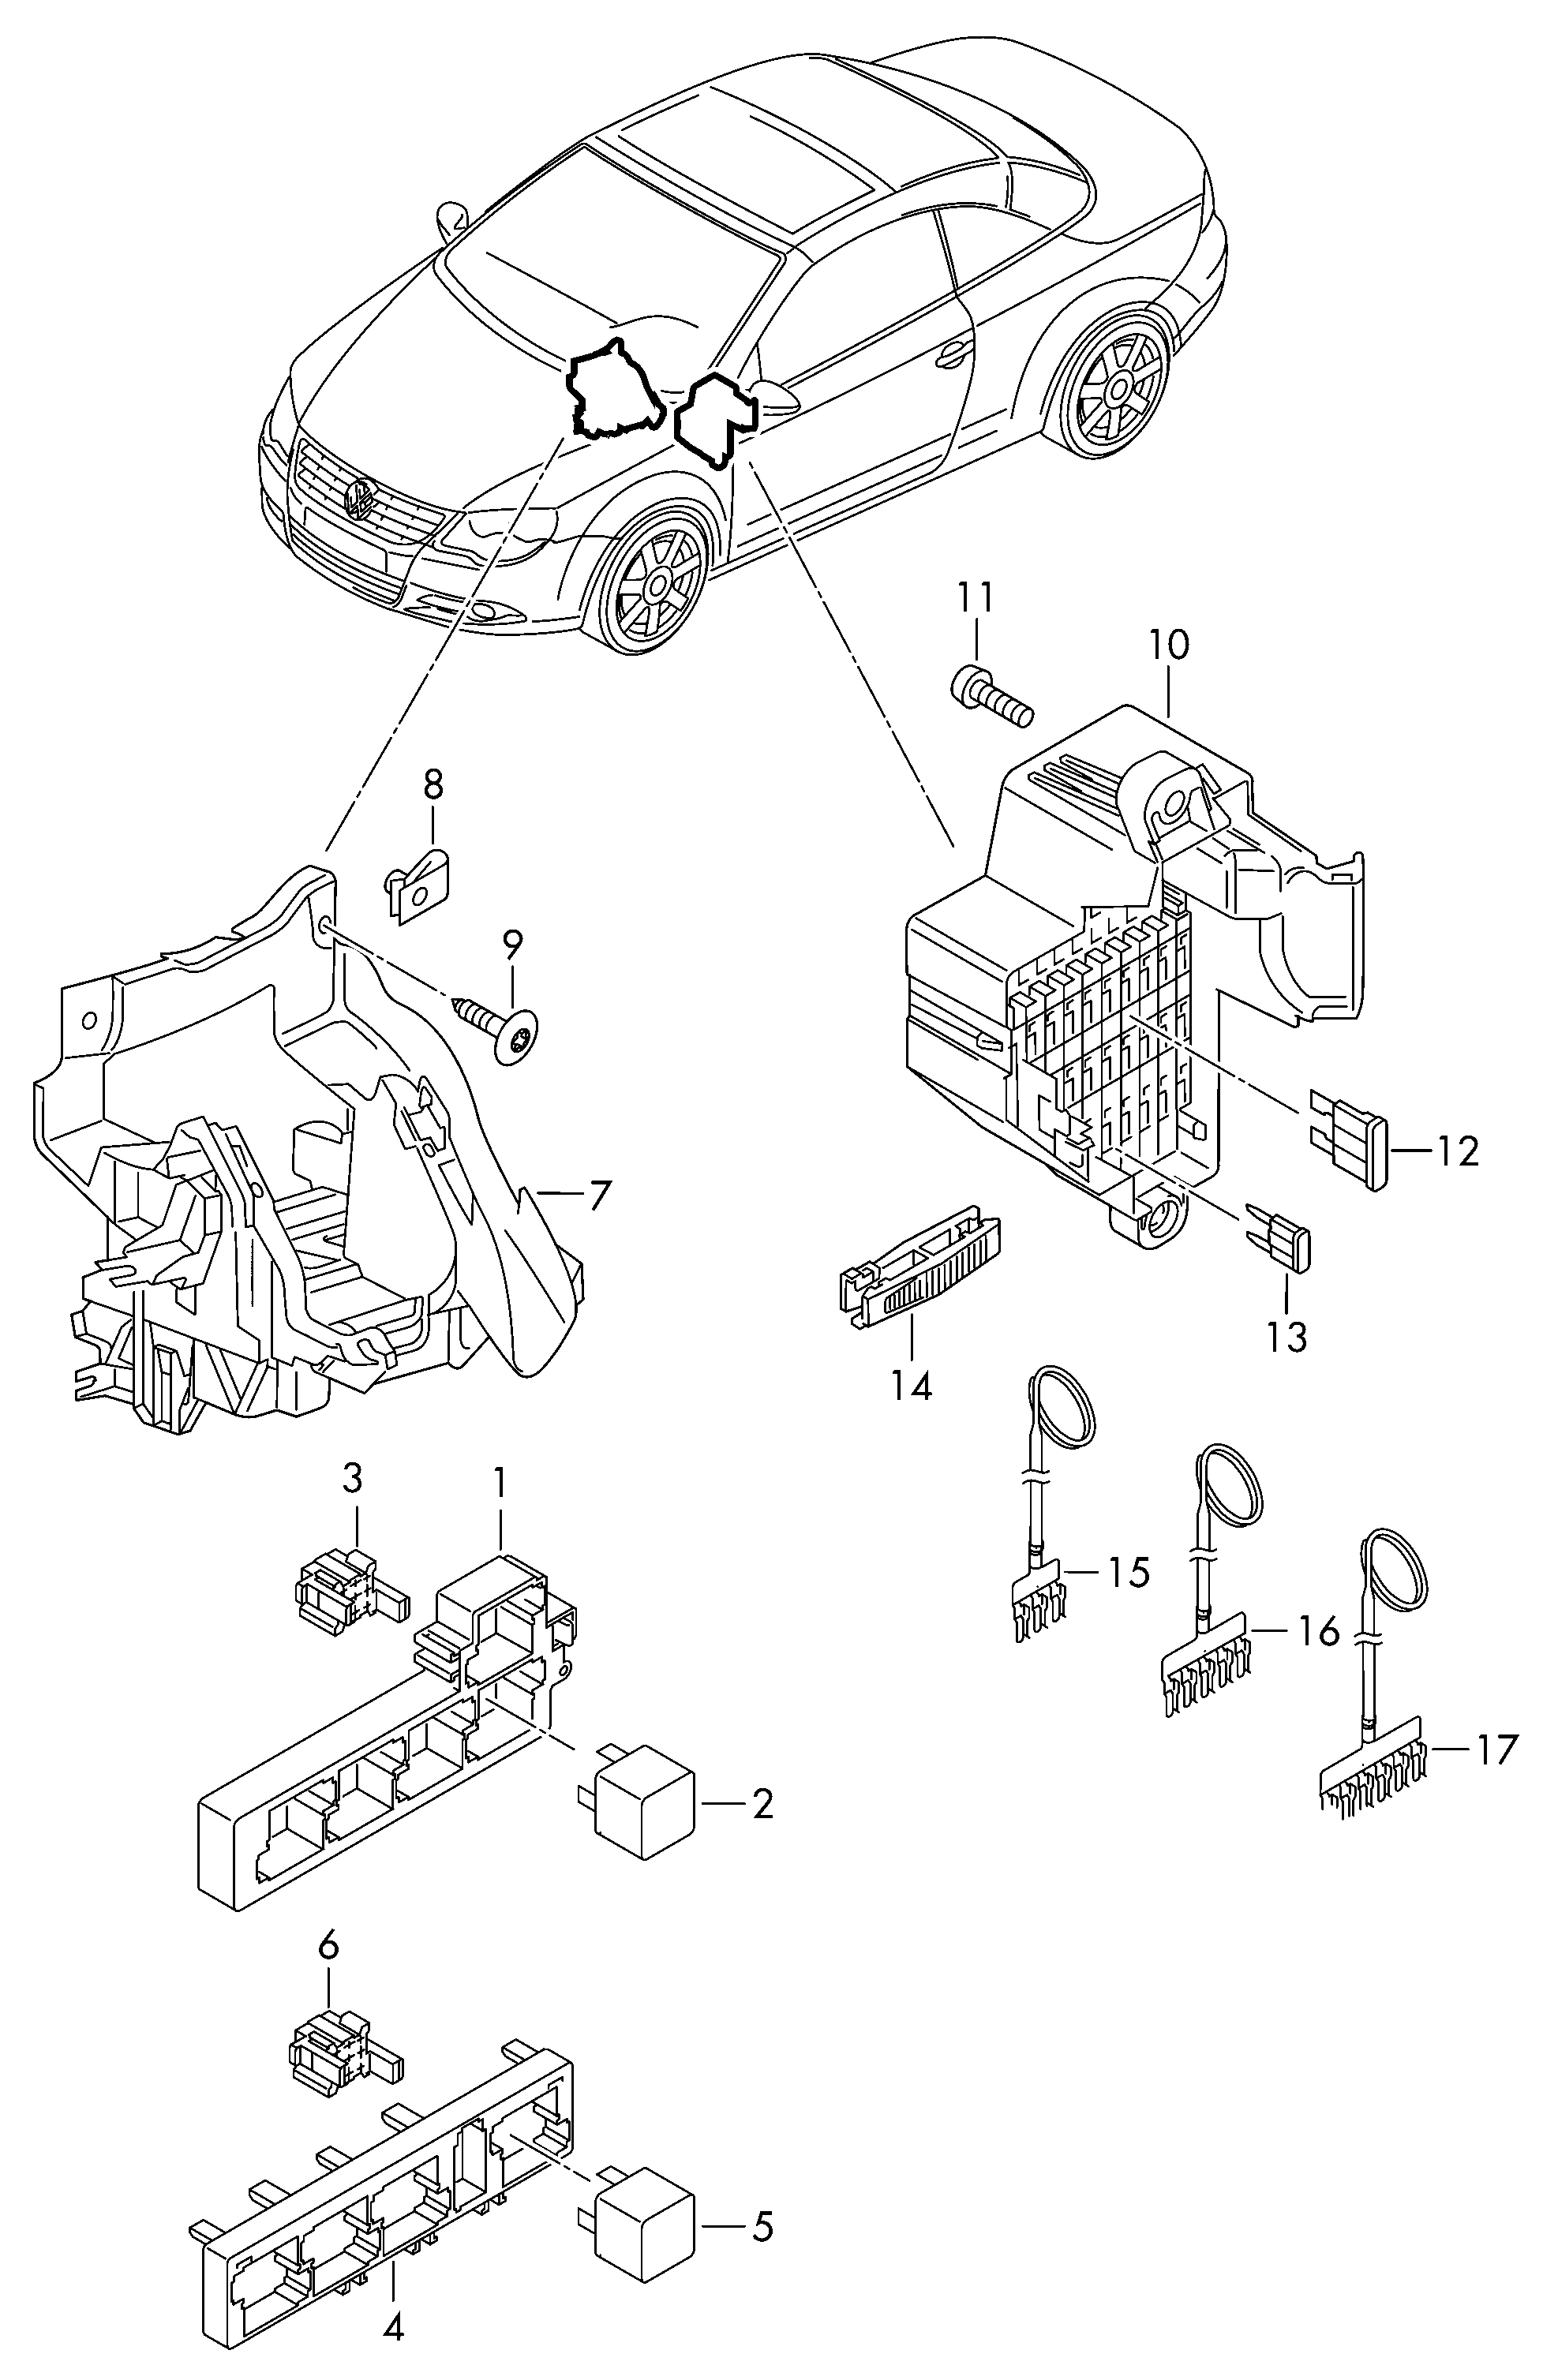 89 2004 Acura Tl Timing Belt Replacement Genuine Honda 14400 Rca 2005 Mdx Fuse Box 04 Diagram Auto Wiring 1998